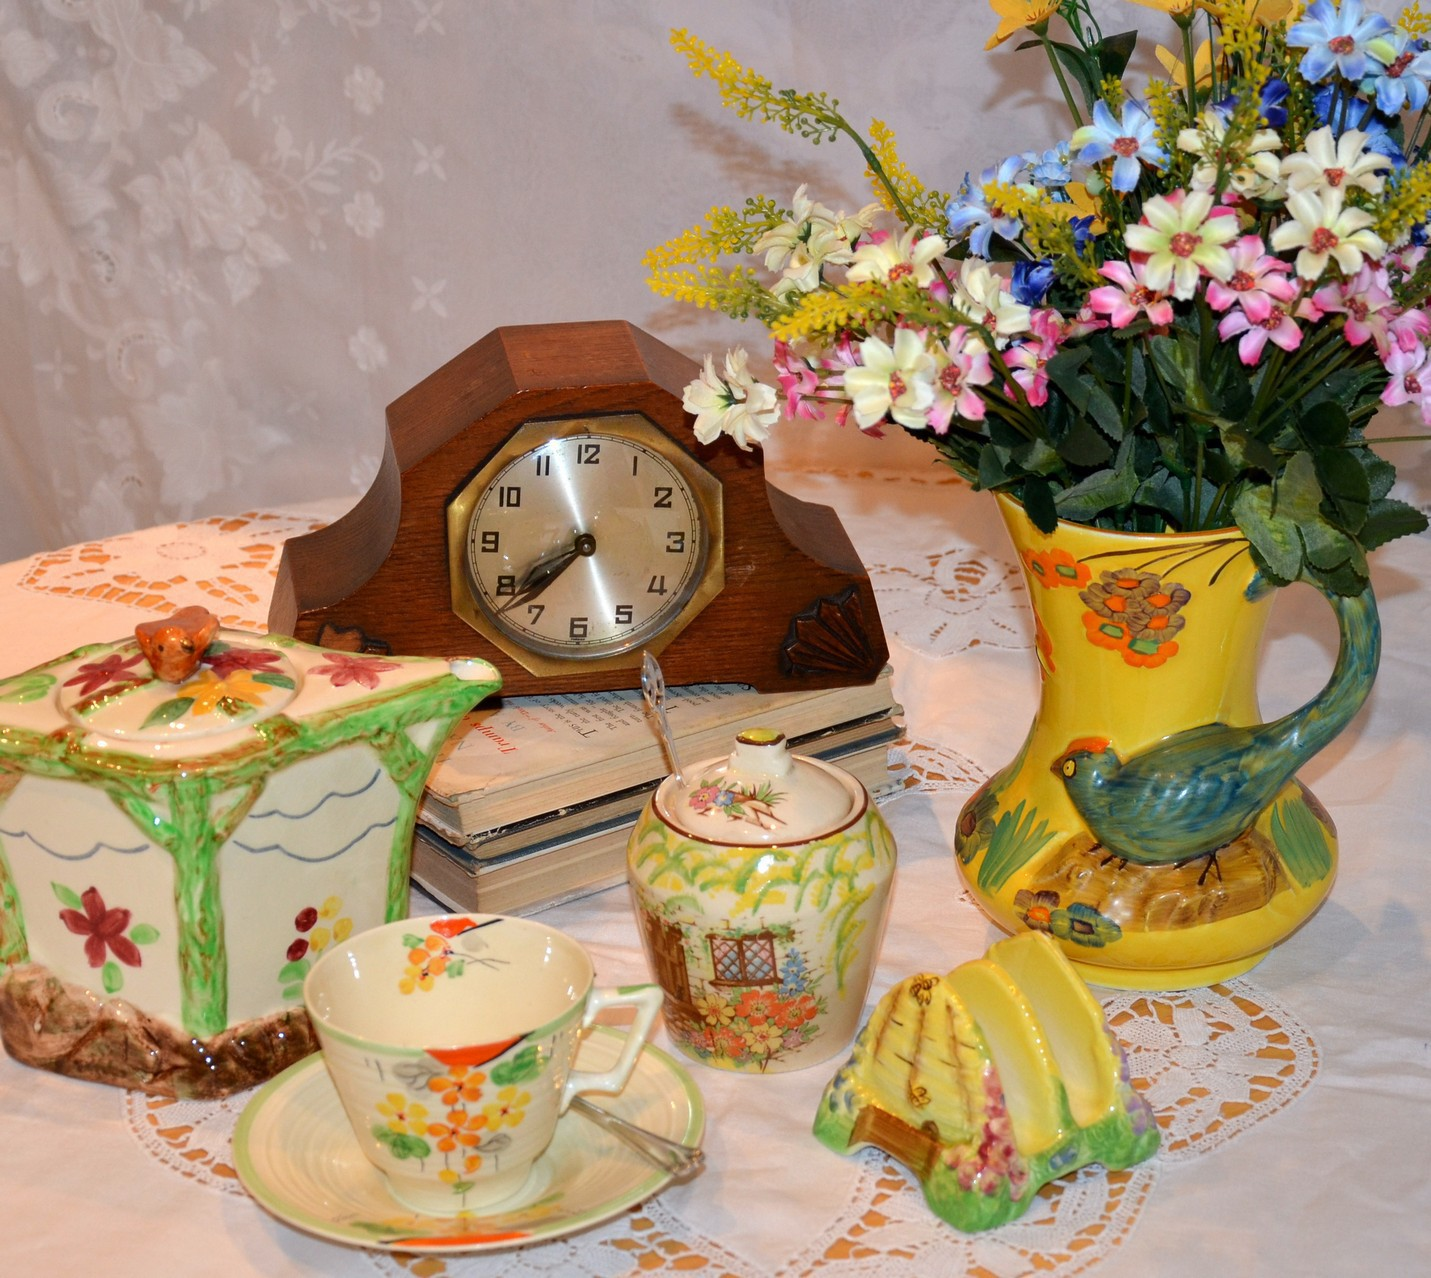 vintage jam pots and antique clock